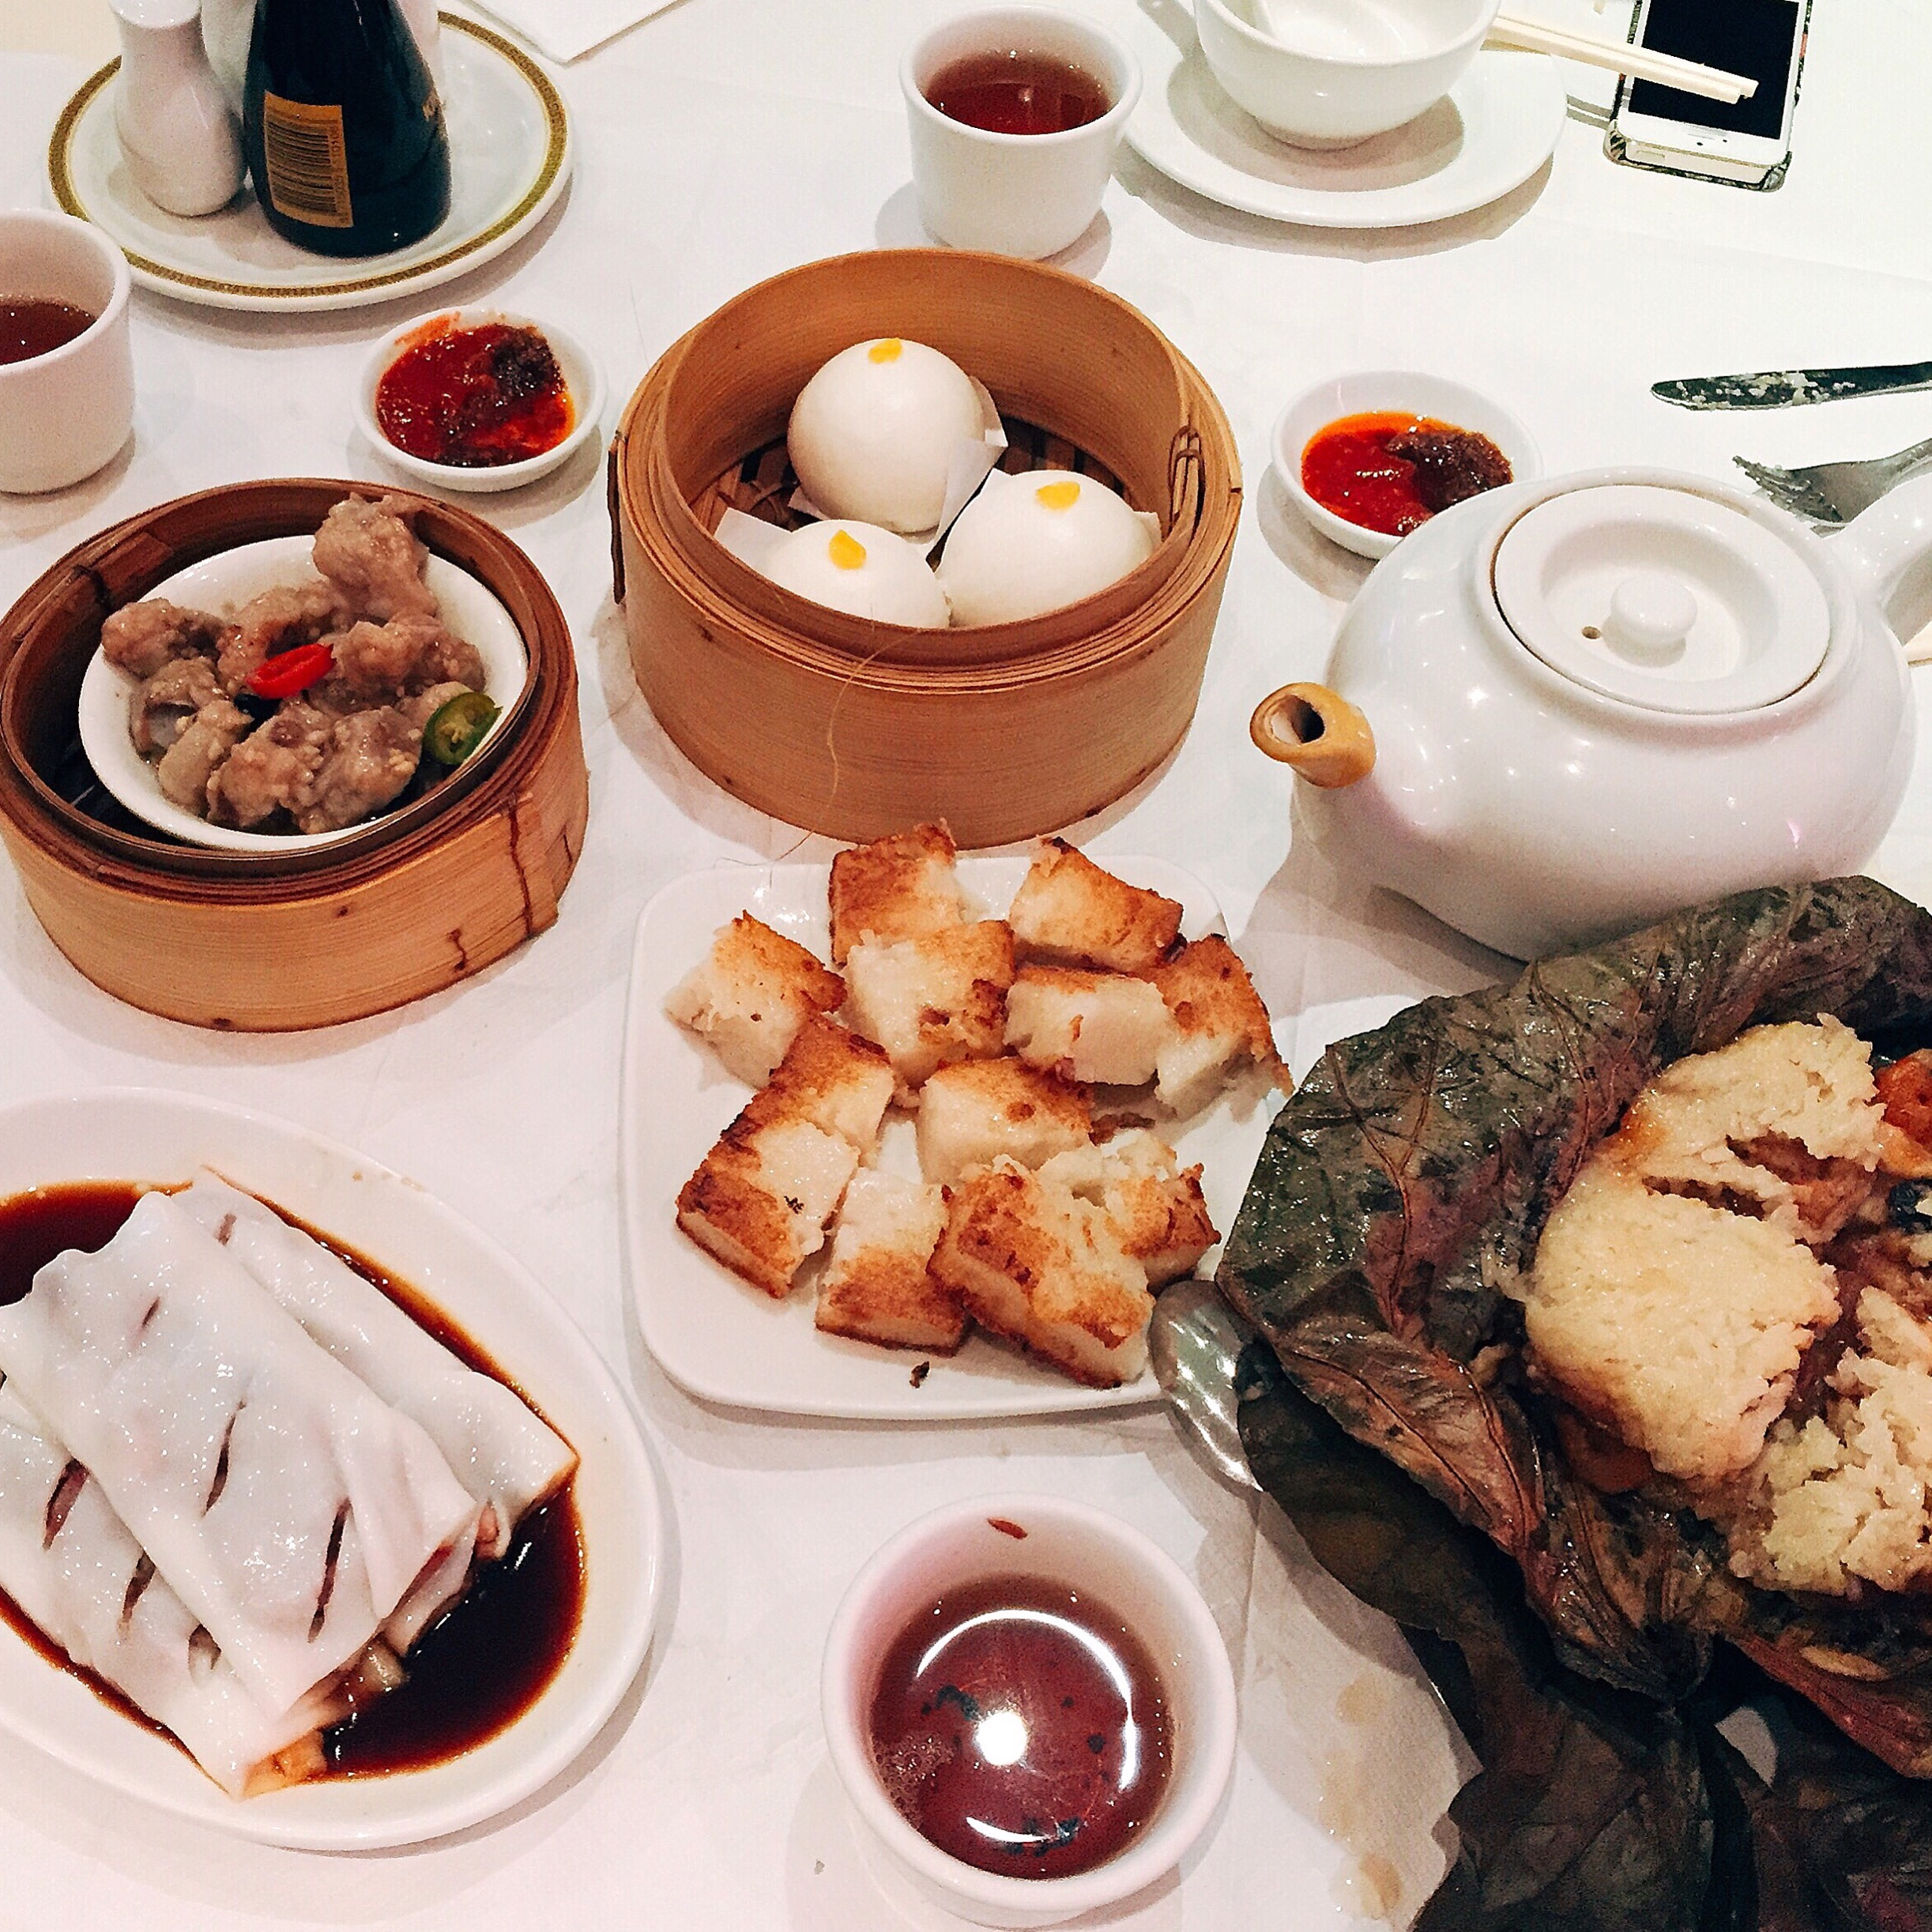 A Well-Deserved Dim Sum Lunch